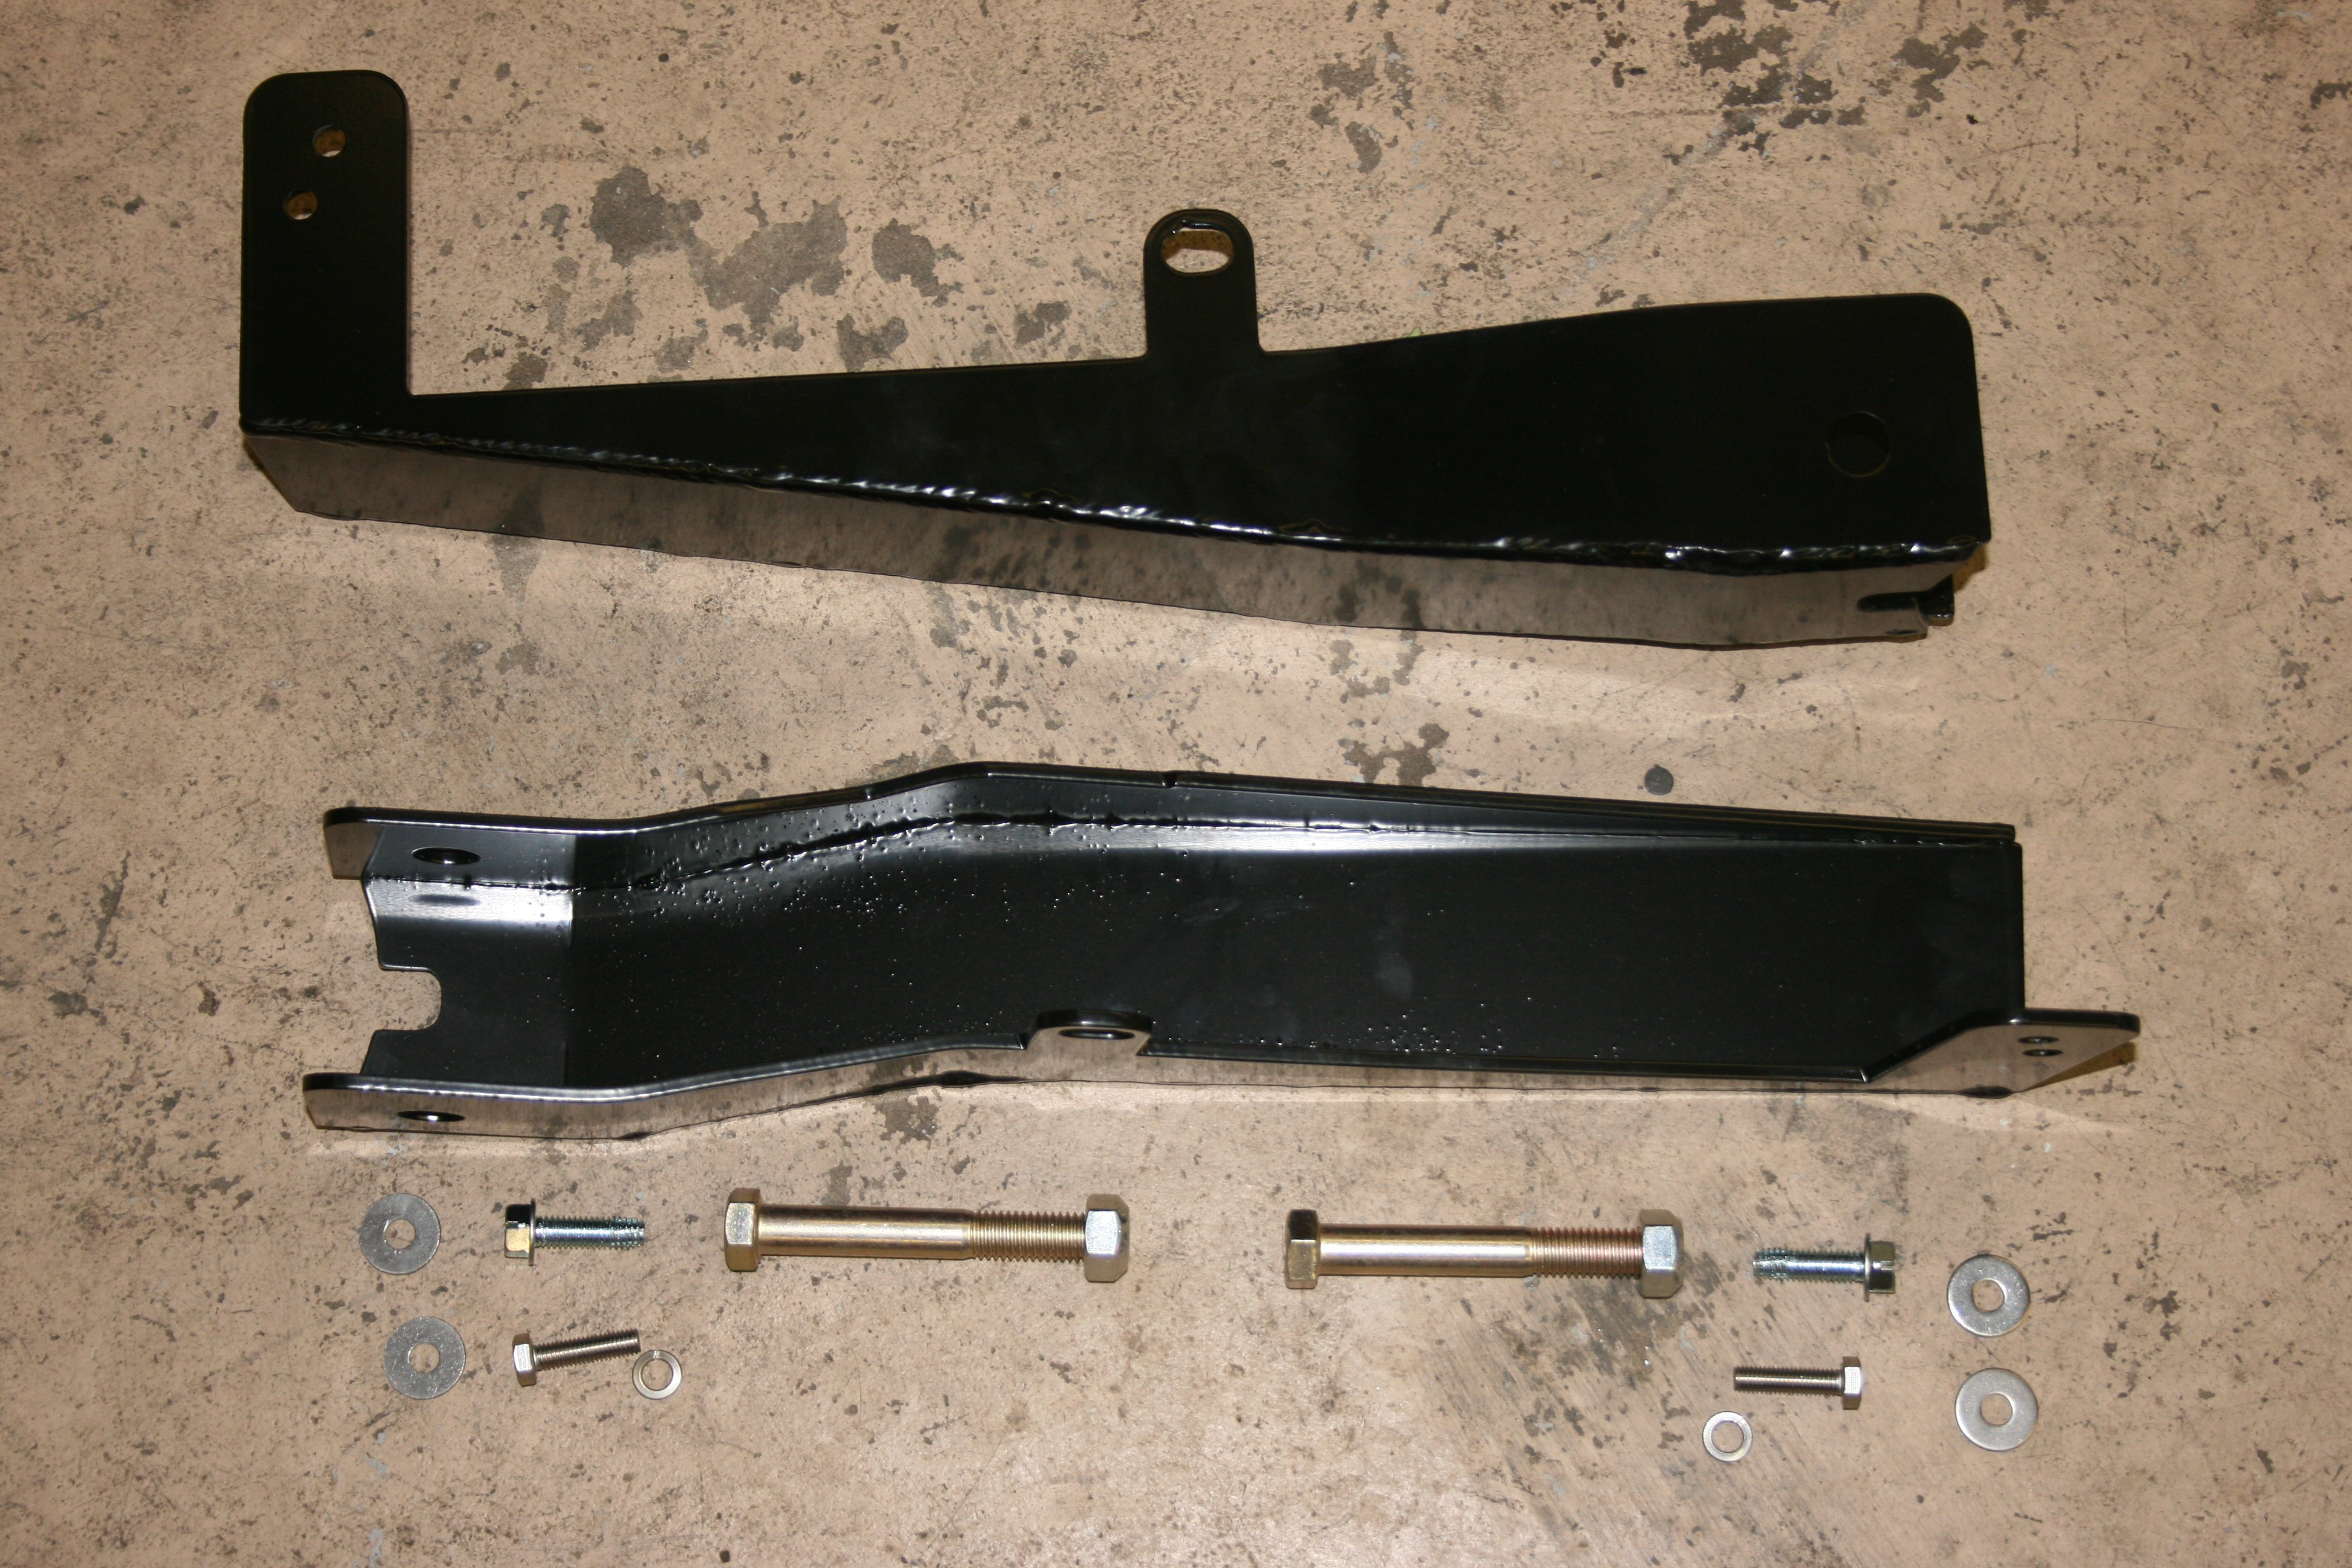 FJC rear link sliders